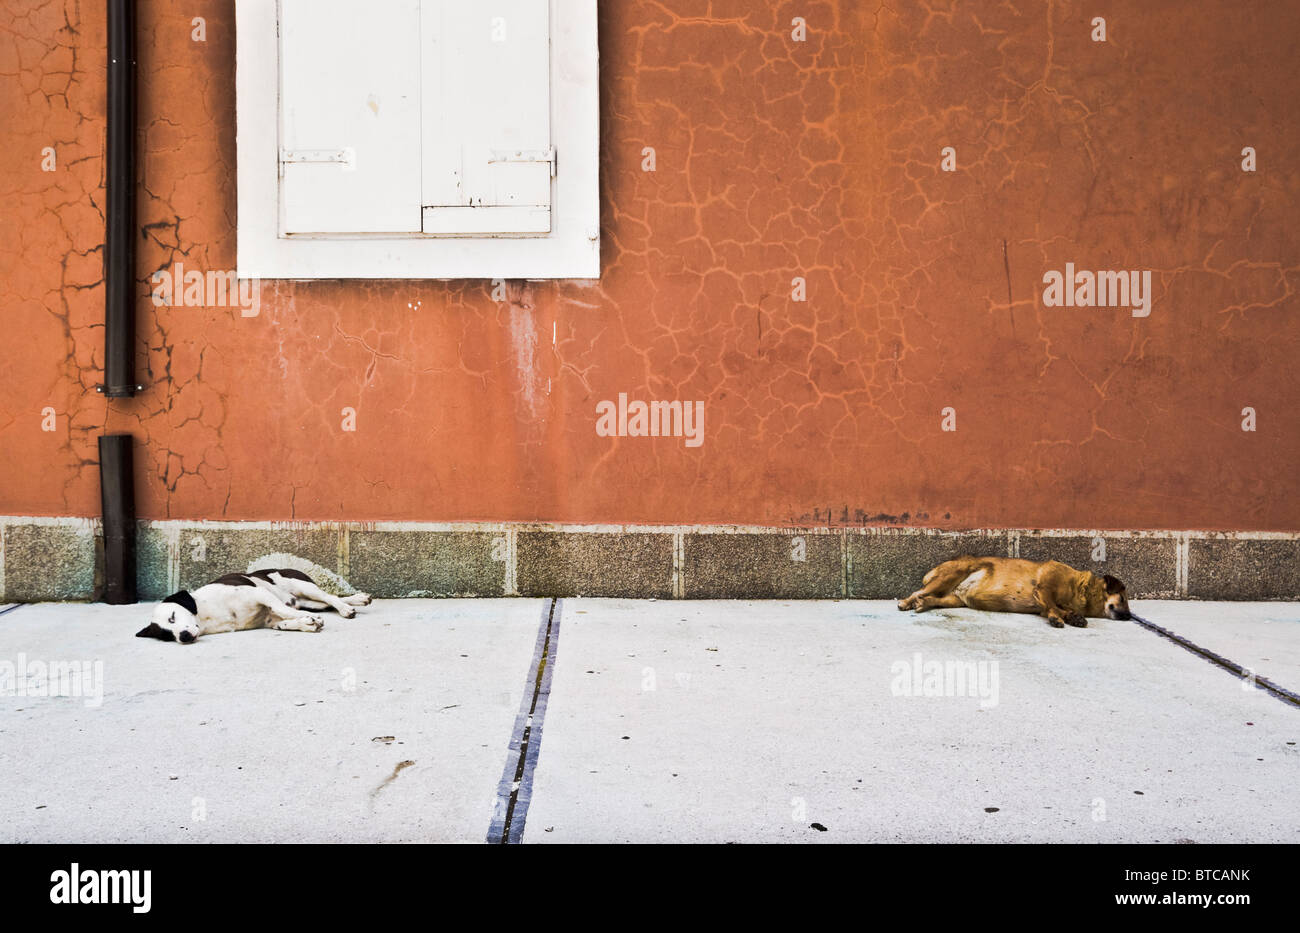 Two dogs sleepig in the old town of Kotor (Montenegro) - Stock Image